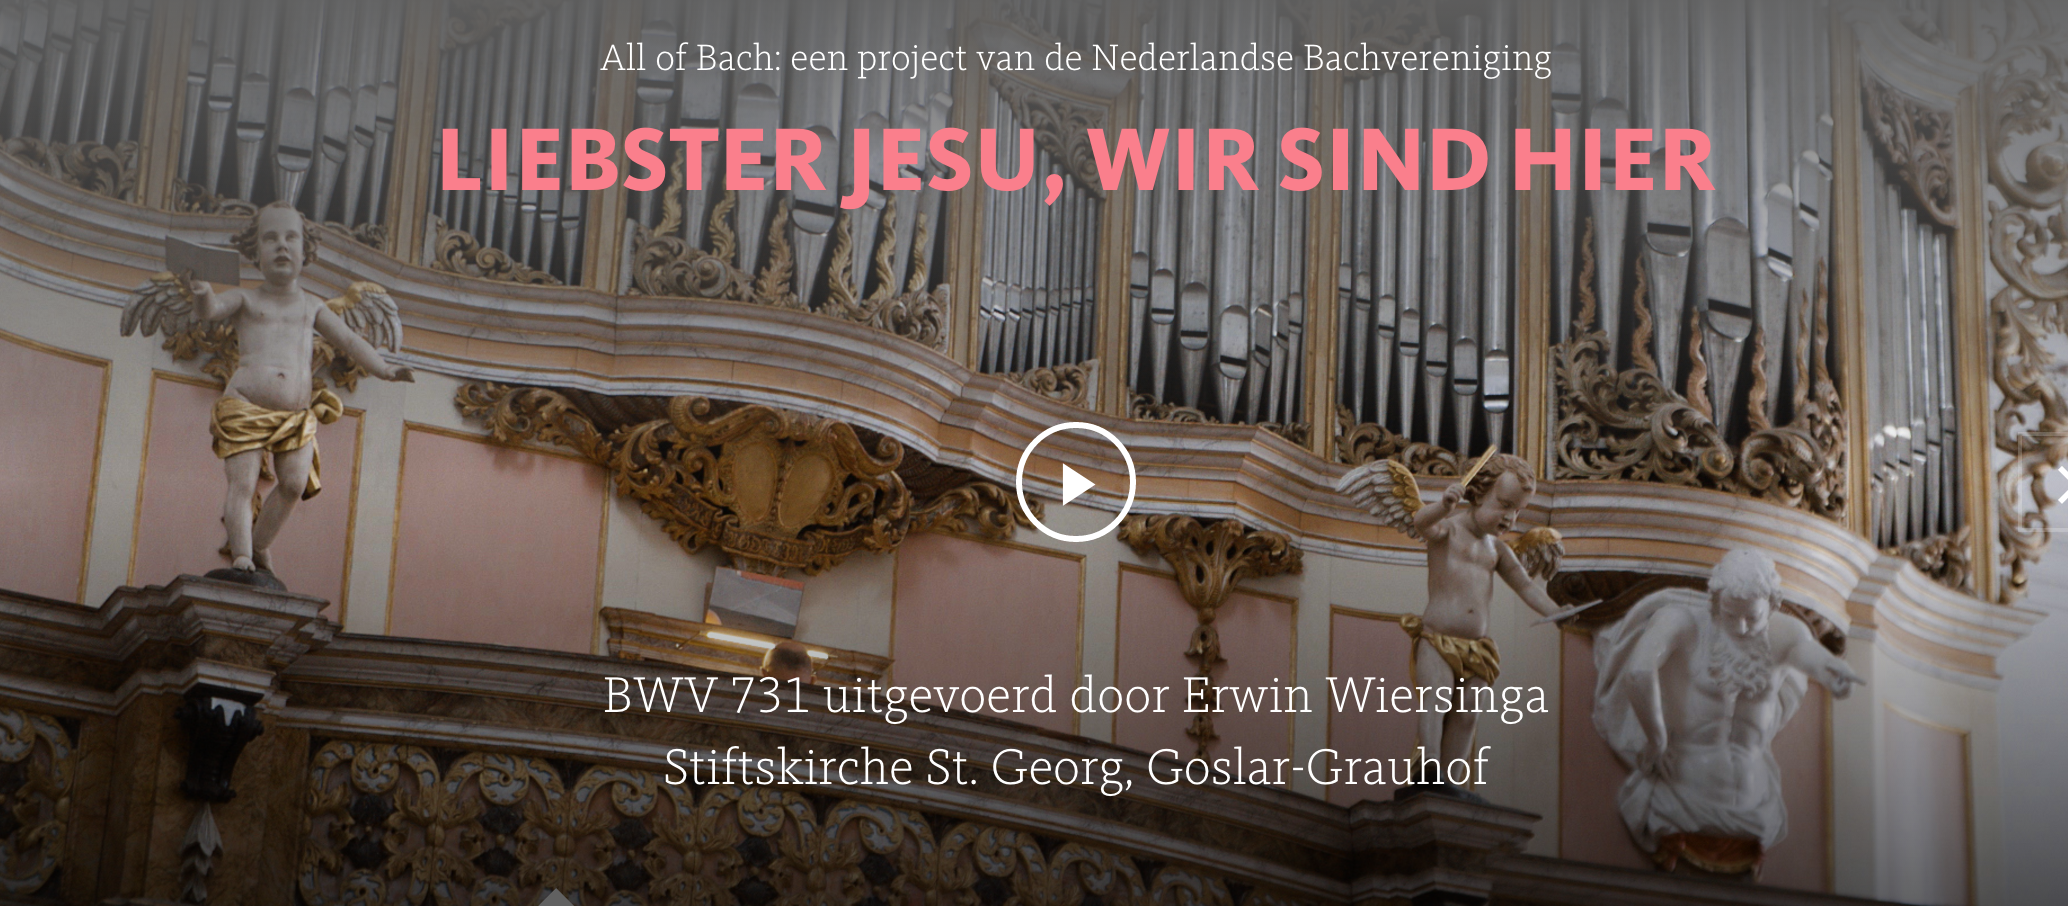 ALL OF BACH BWV 731